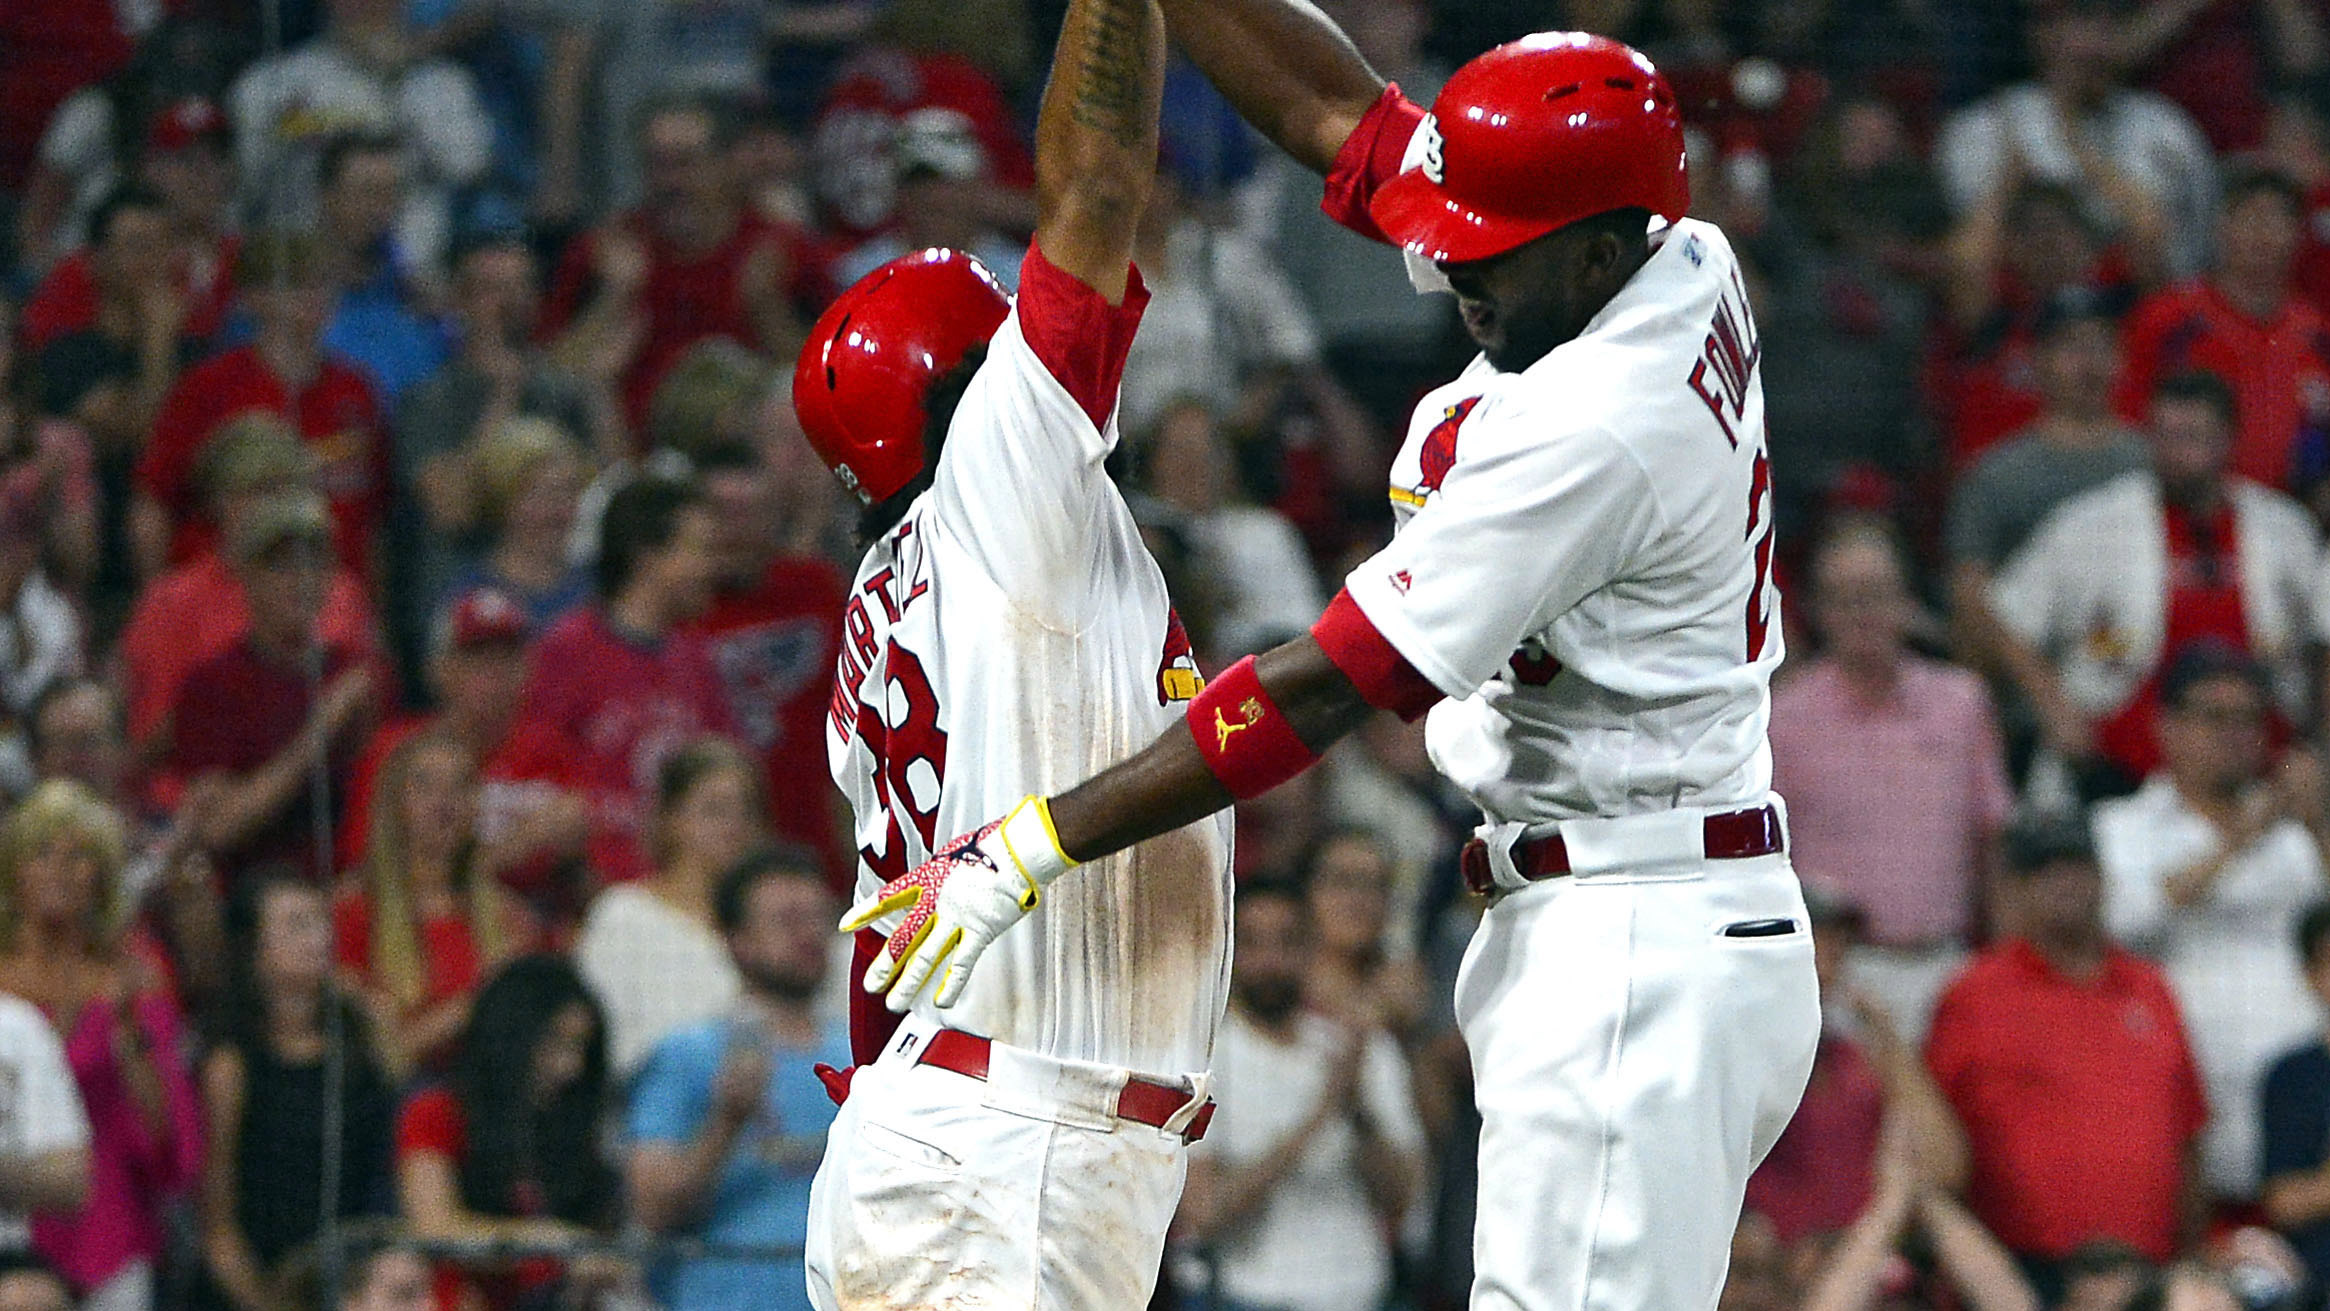 Fowler's four-hit night, a seven-run seventh lift Cards to 13-5 win over Brewers